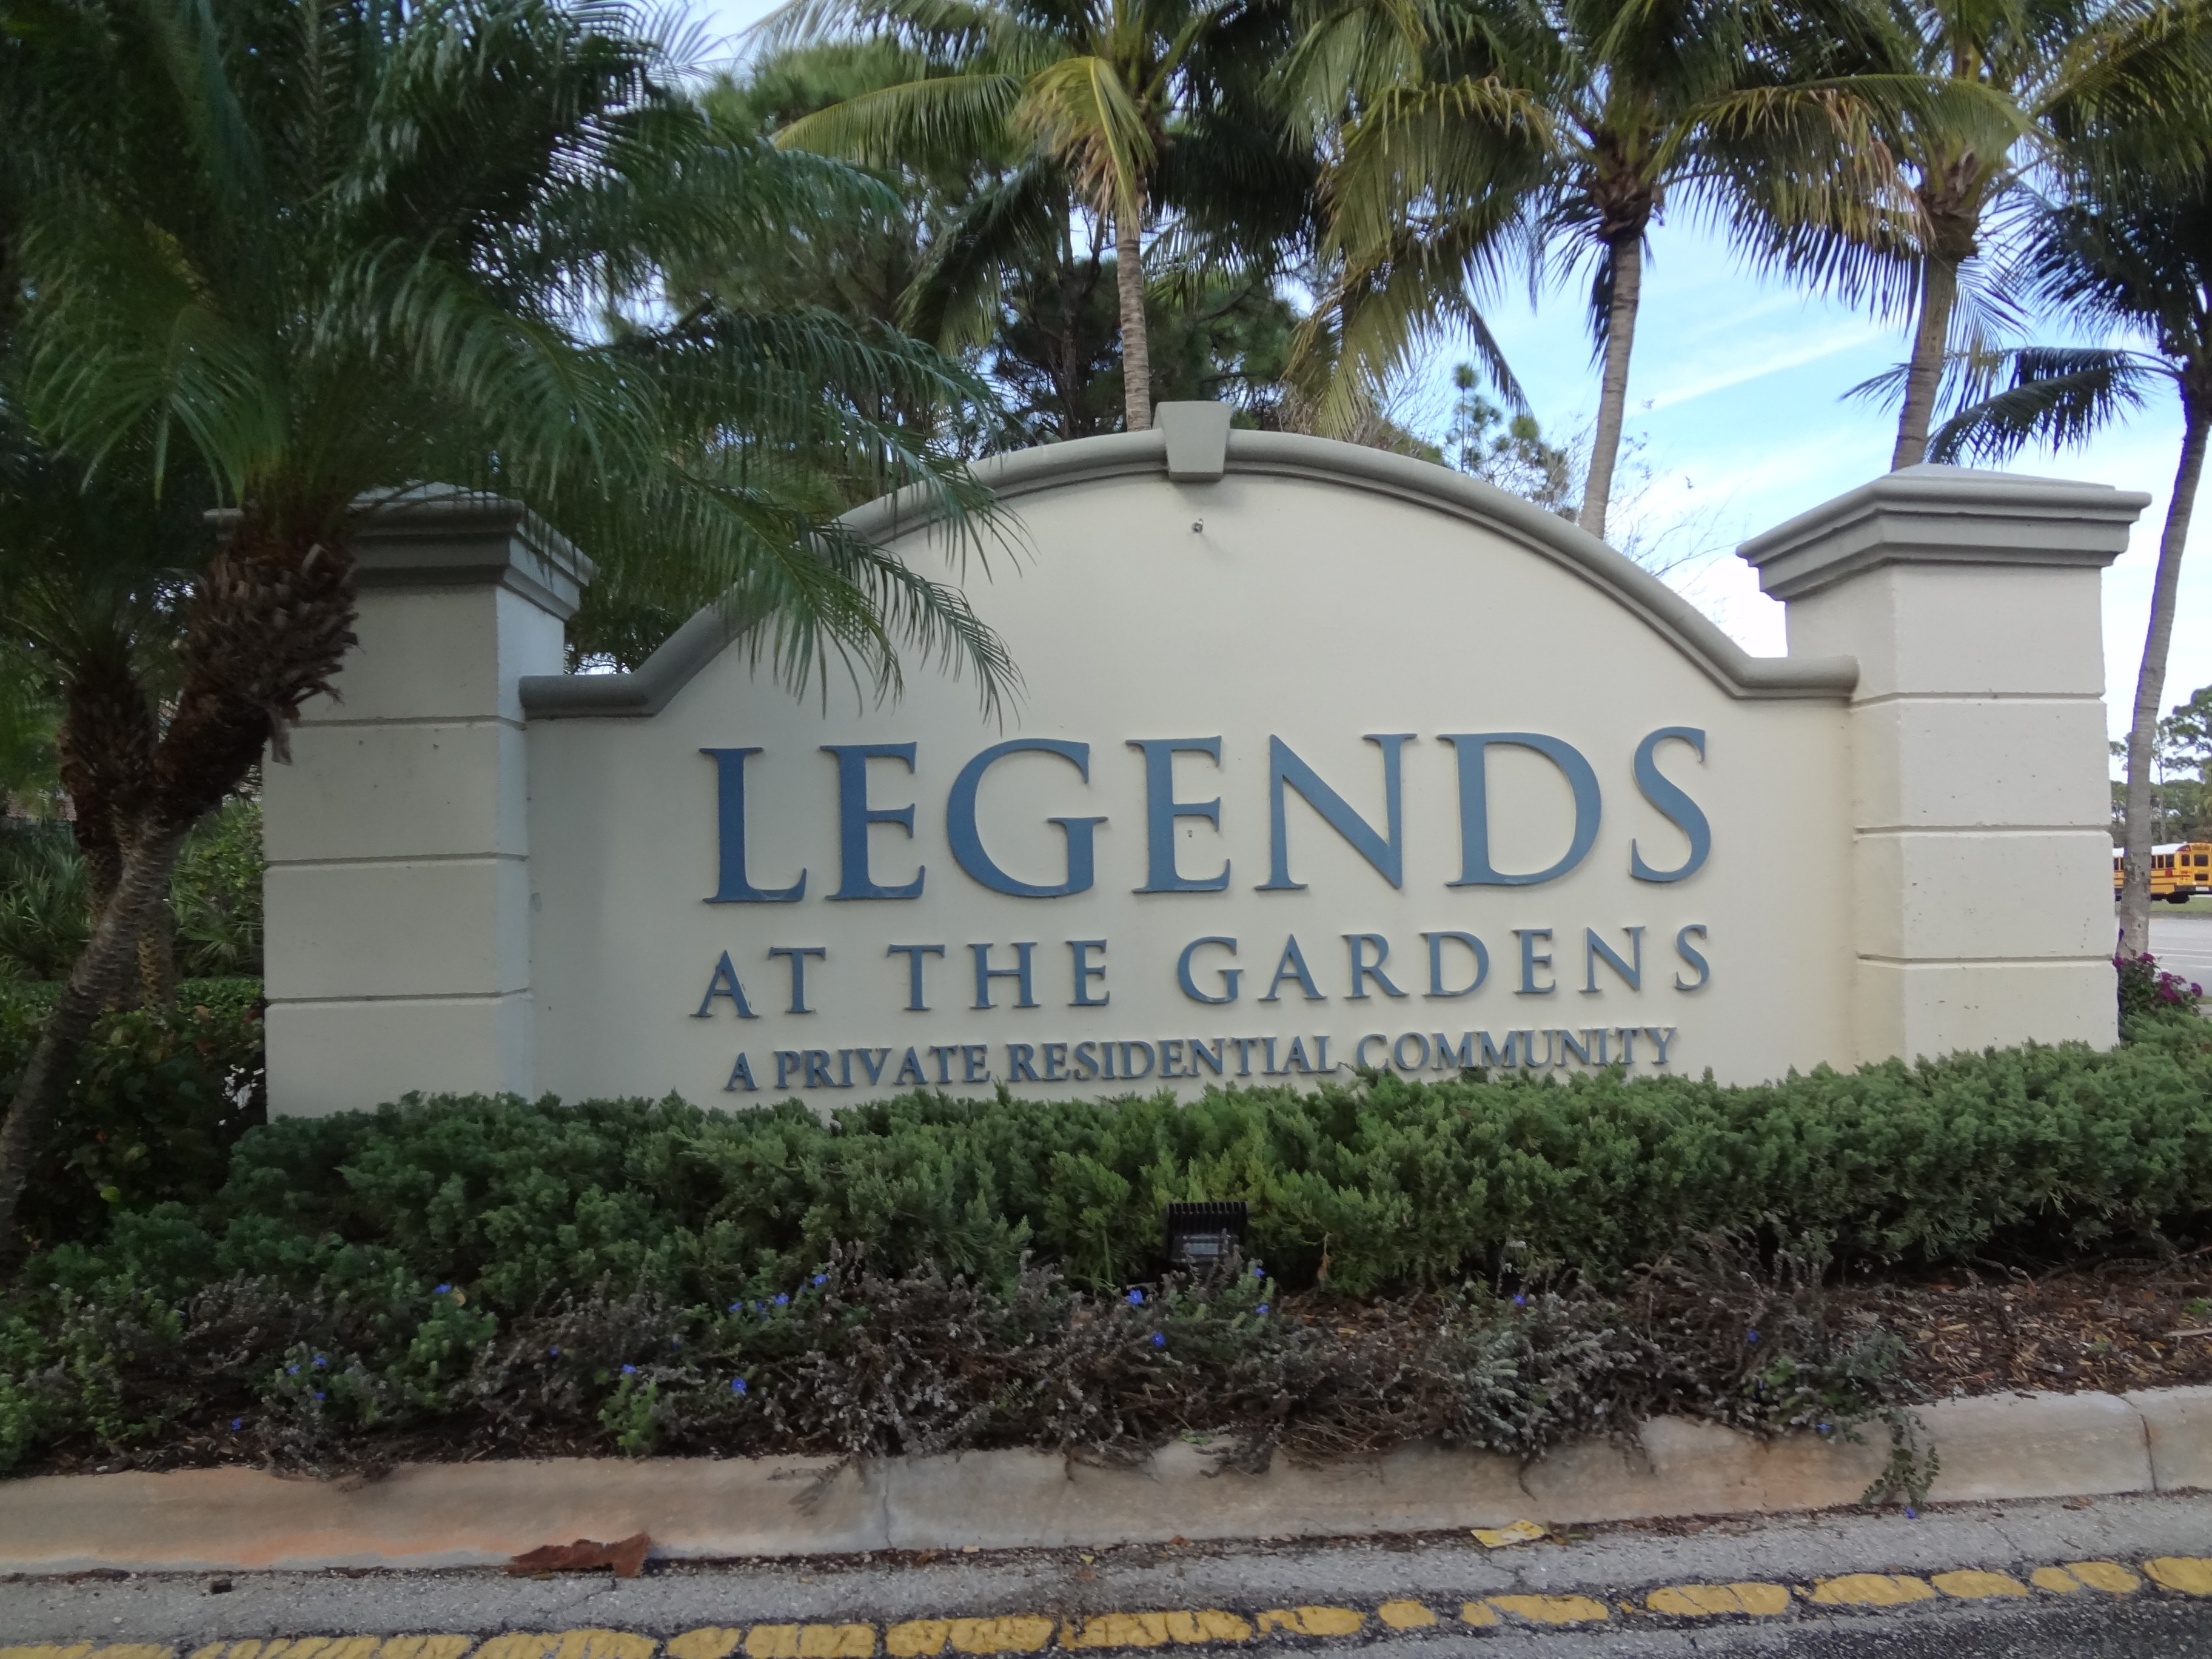 The Legends townhomes in Palm Beach Gardens Florida